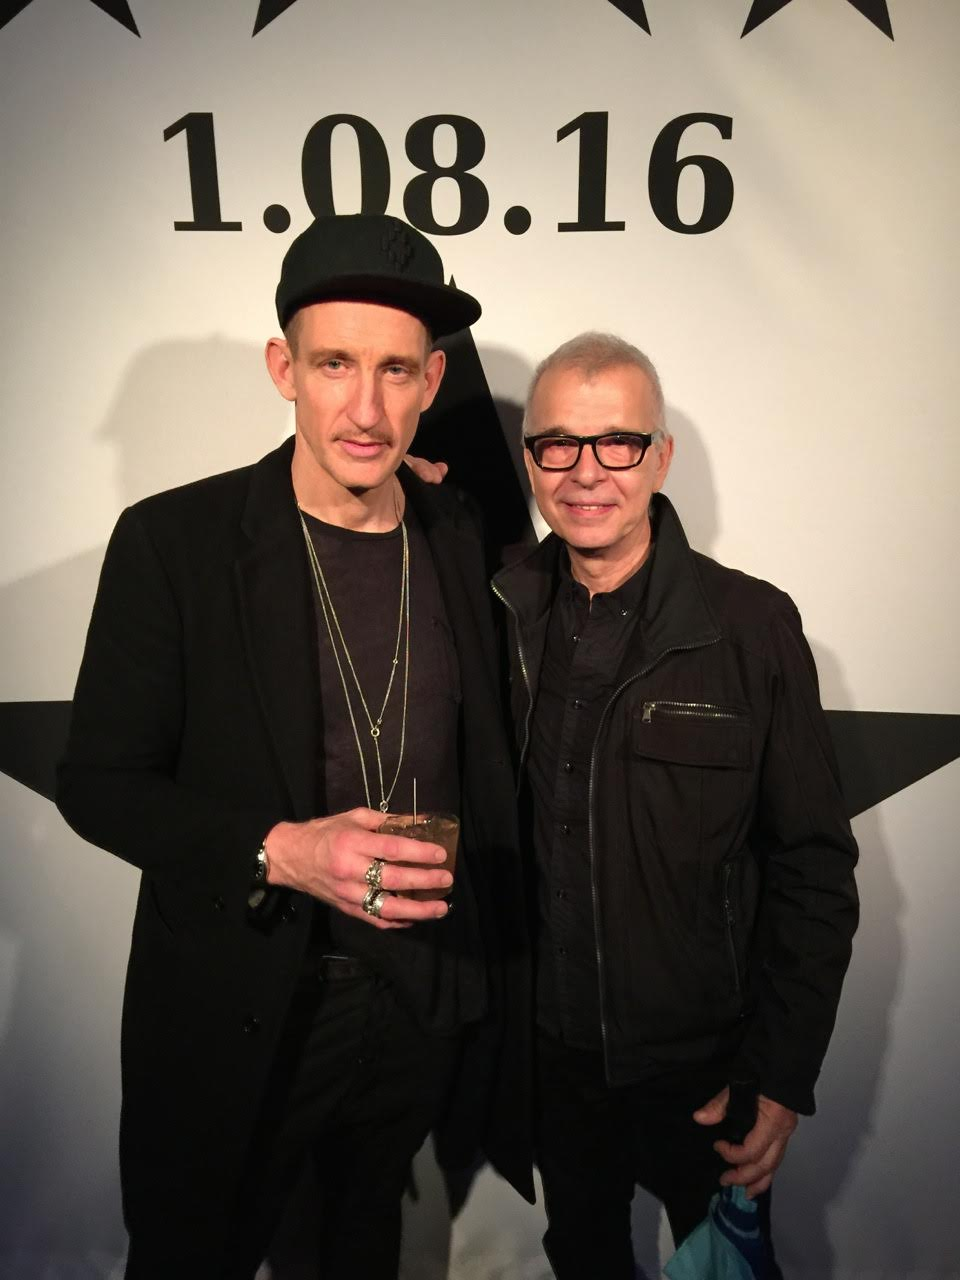 Tony Visconti and Johan Renck, the director of the Blackstar short film, at the world premiere of the video at Night Hawk Cinema in Williamsburg, NY